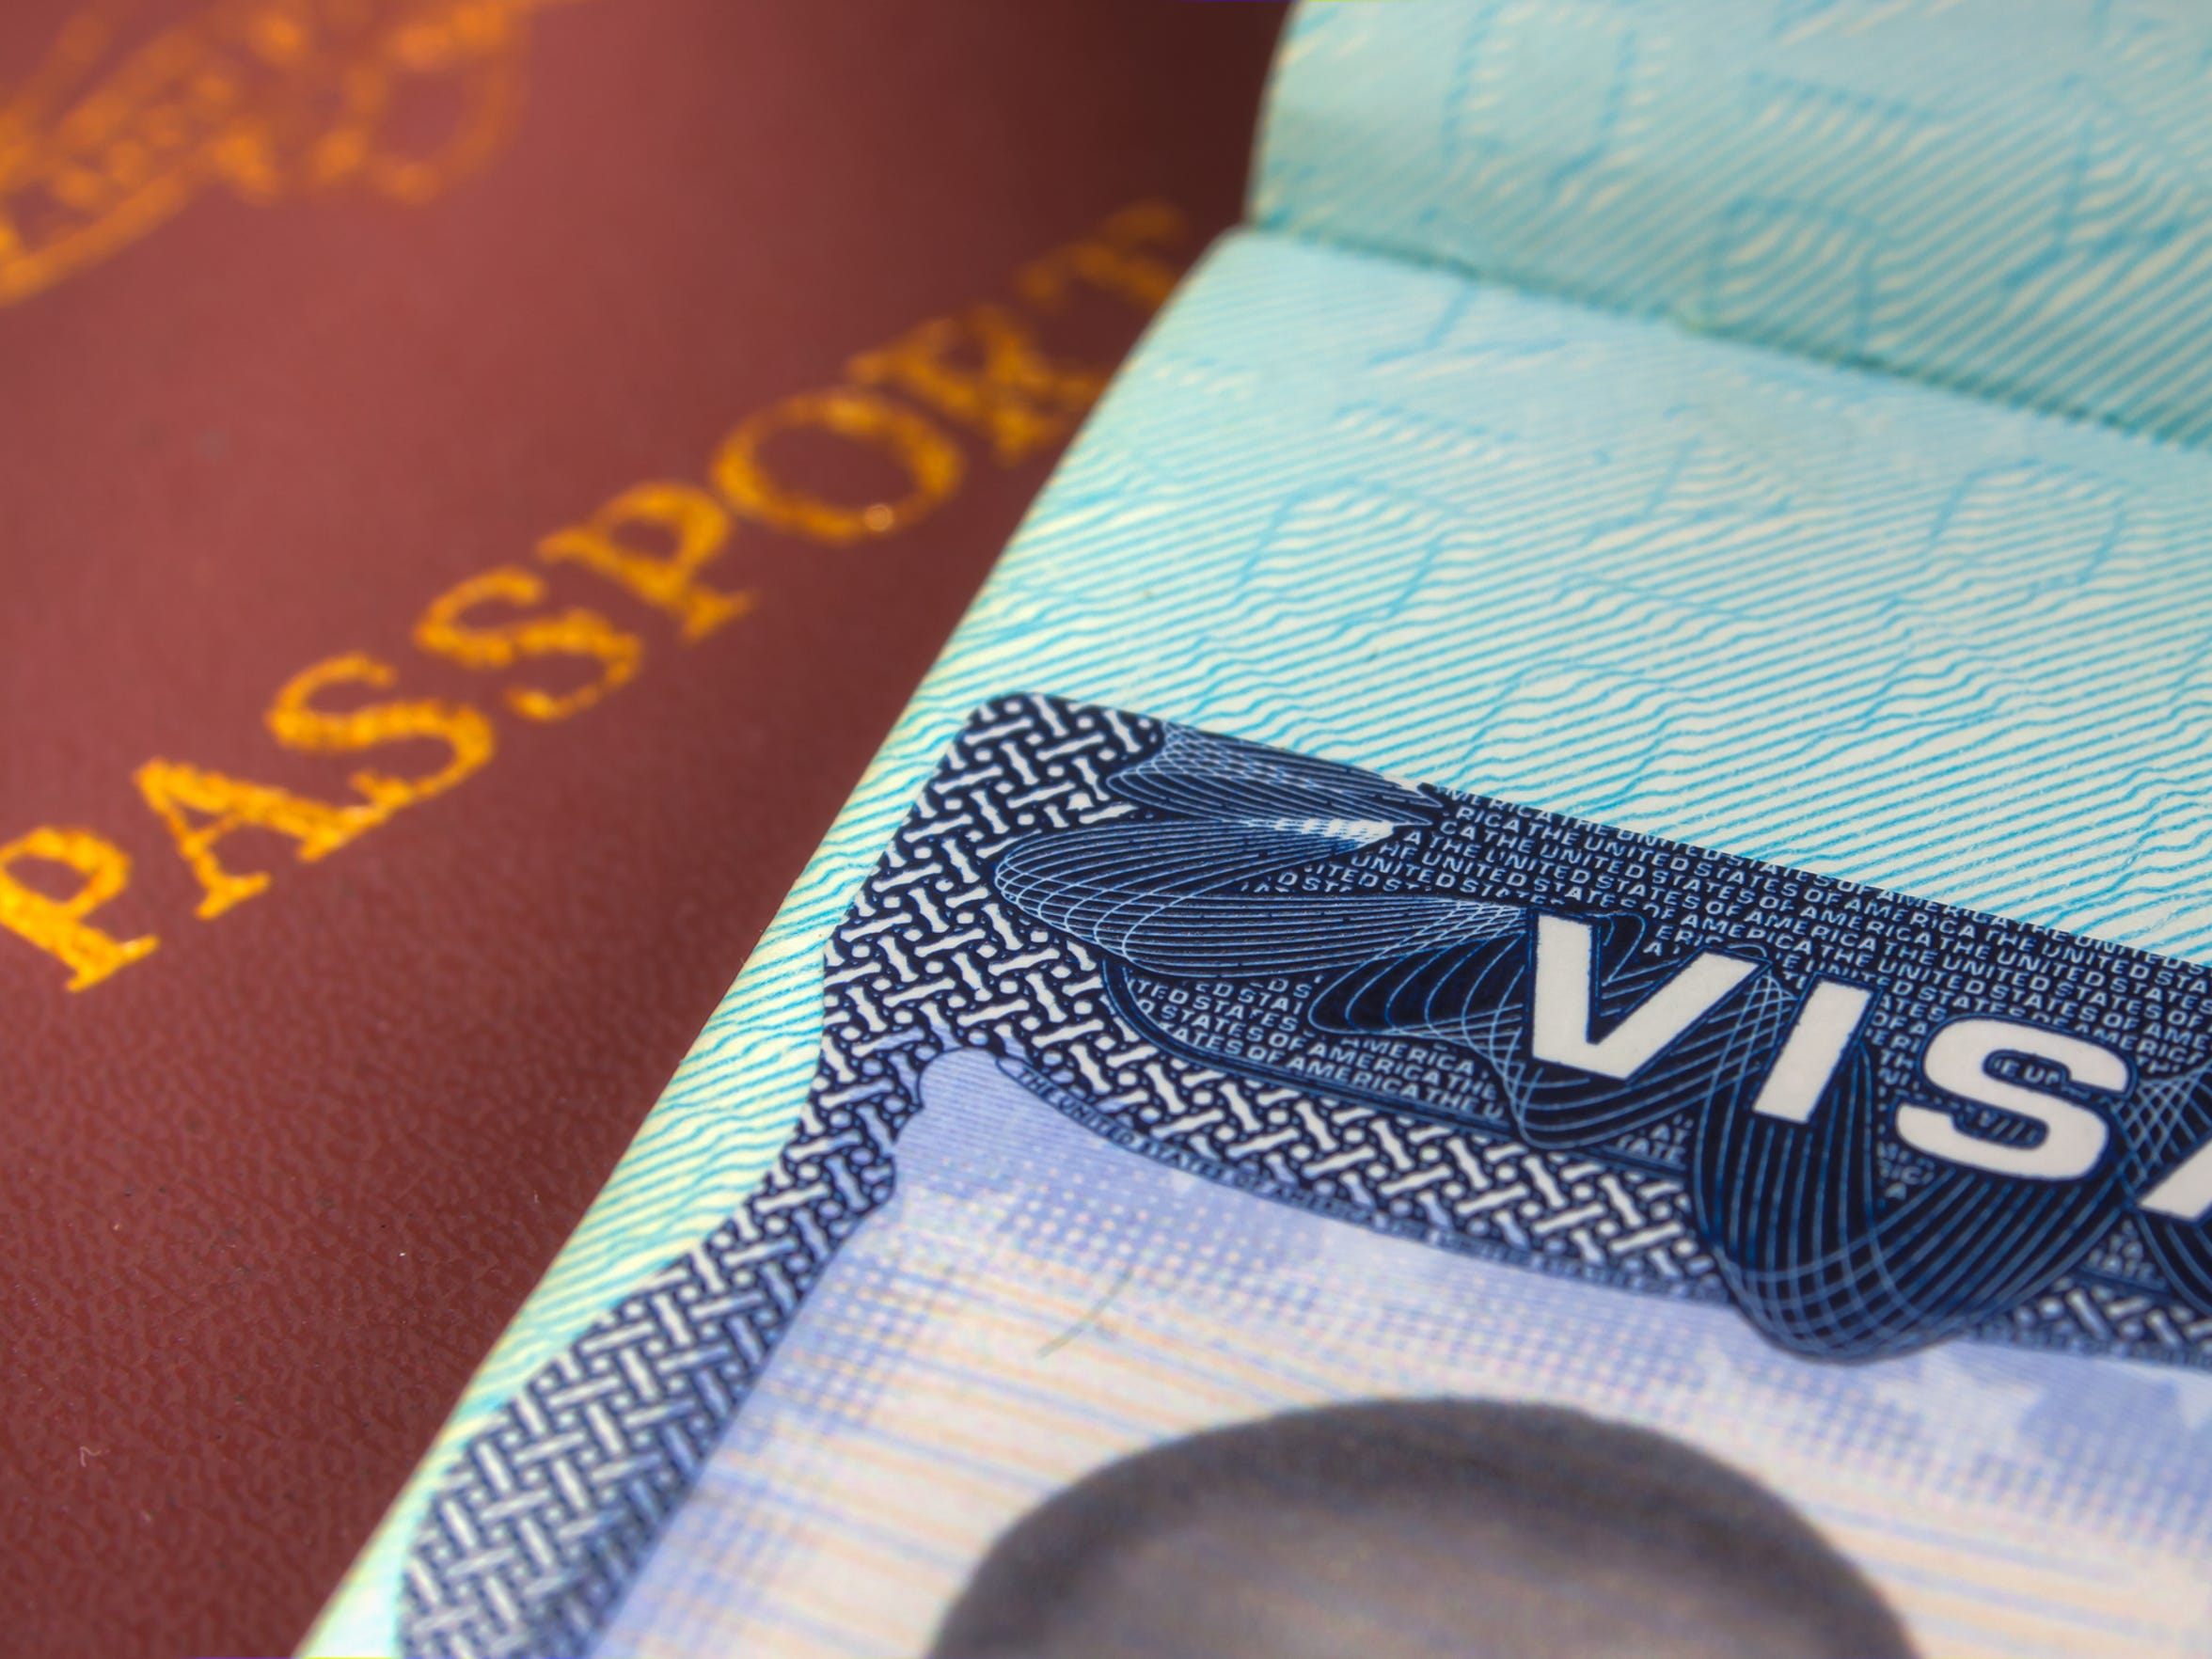 Be sure to determine the requirements for a passport, visa, entry and exit and keep these documents in a safe place at all times.